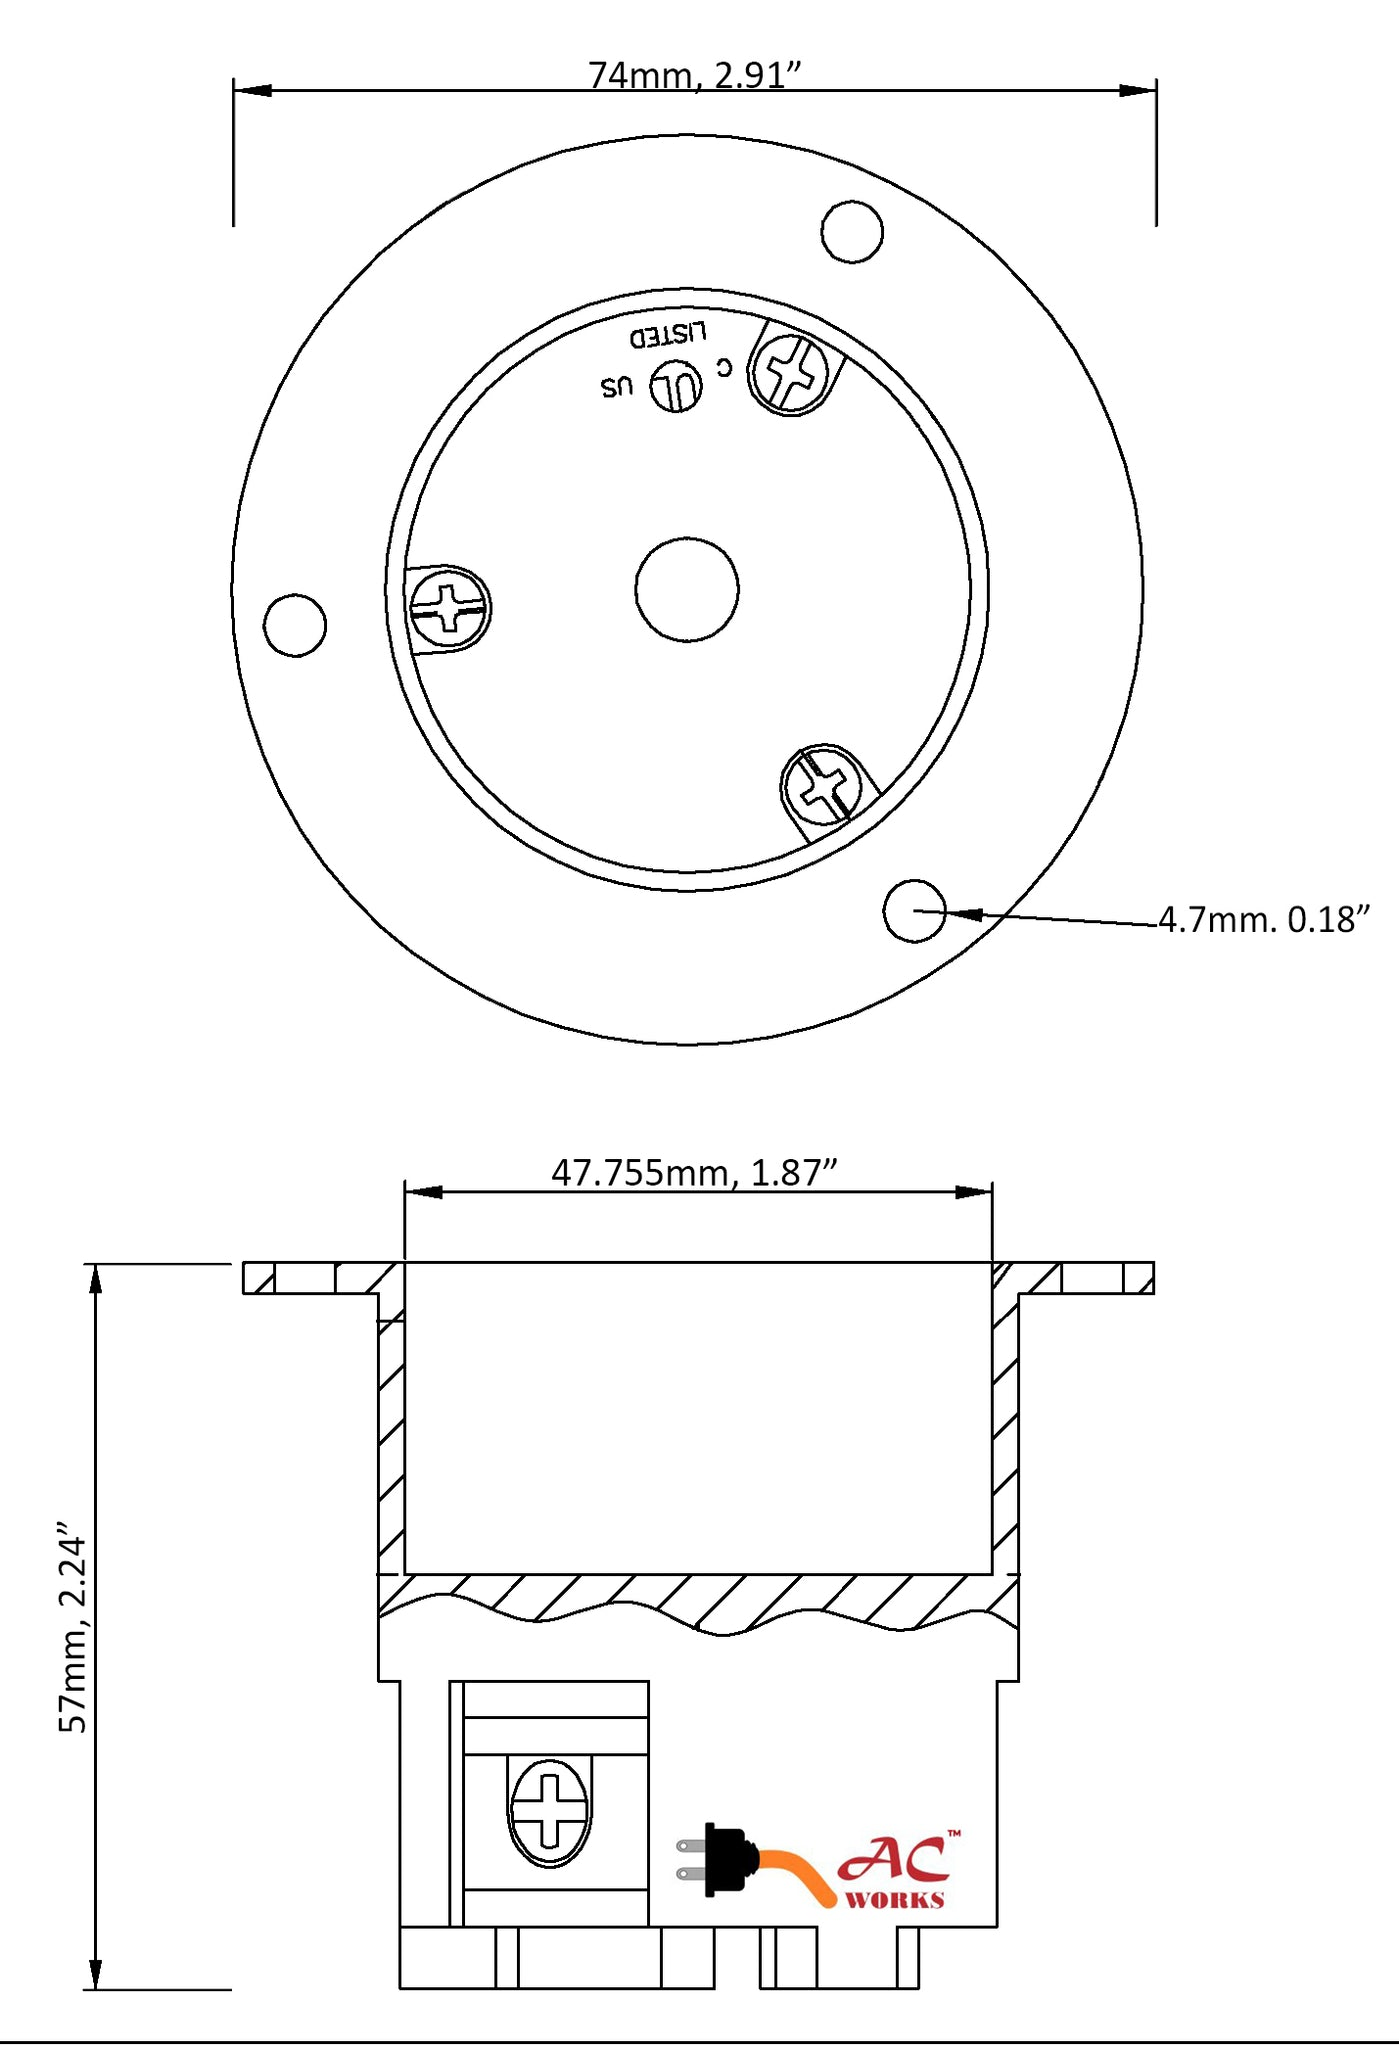 AC WORKS® 20A 125V NEMA L5-20R Flanged Outlet UL and C-UL